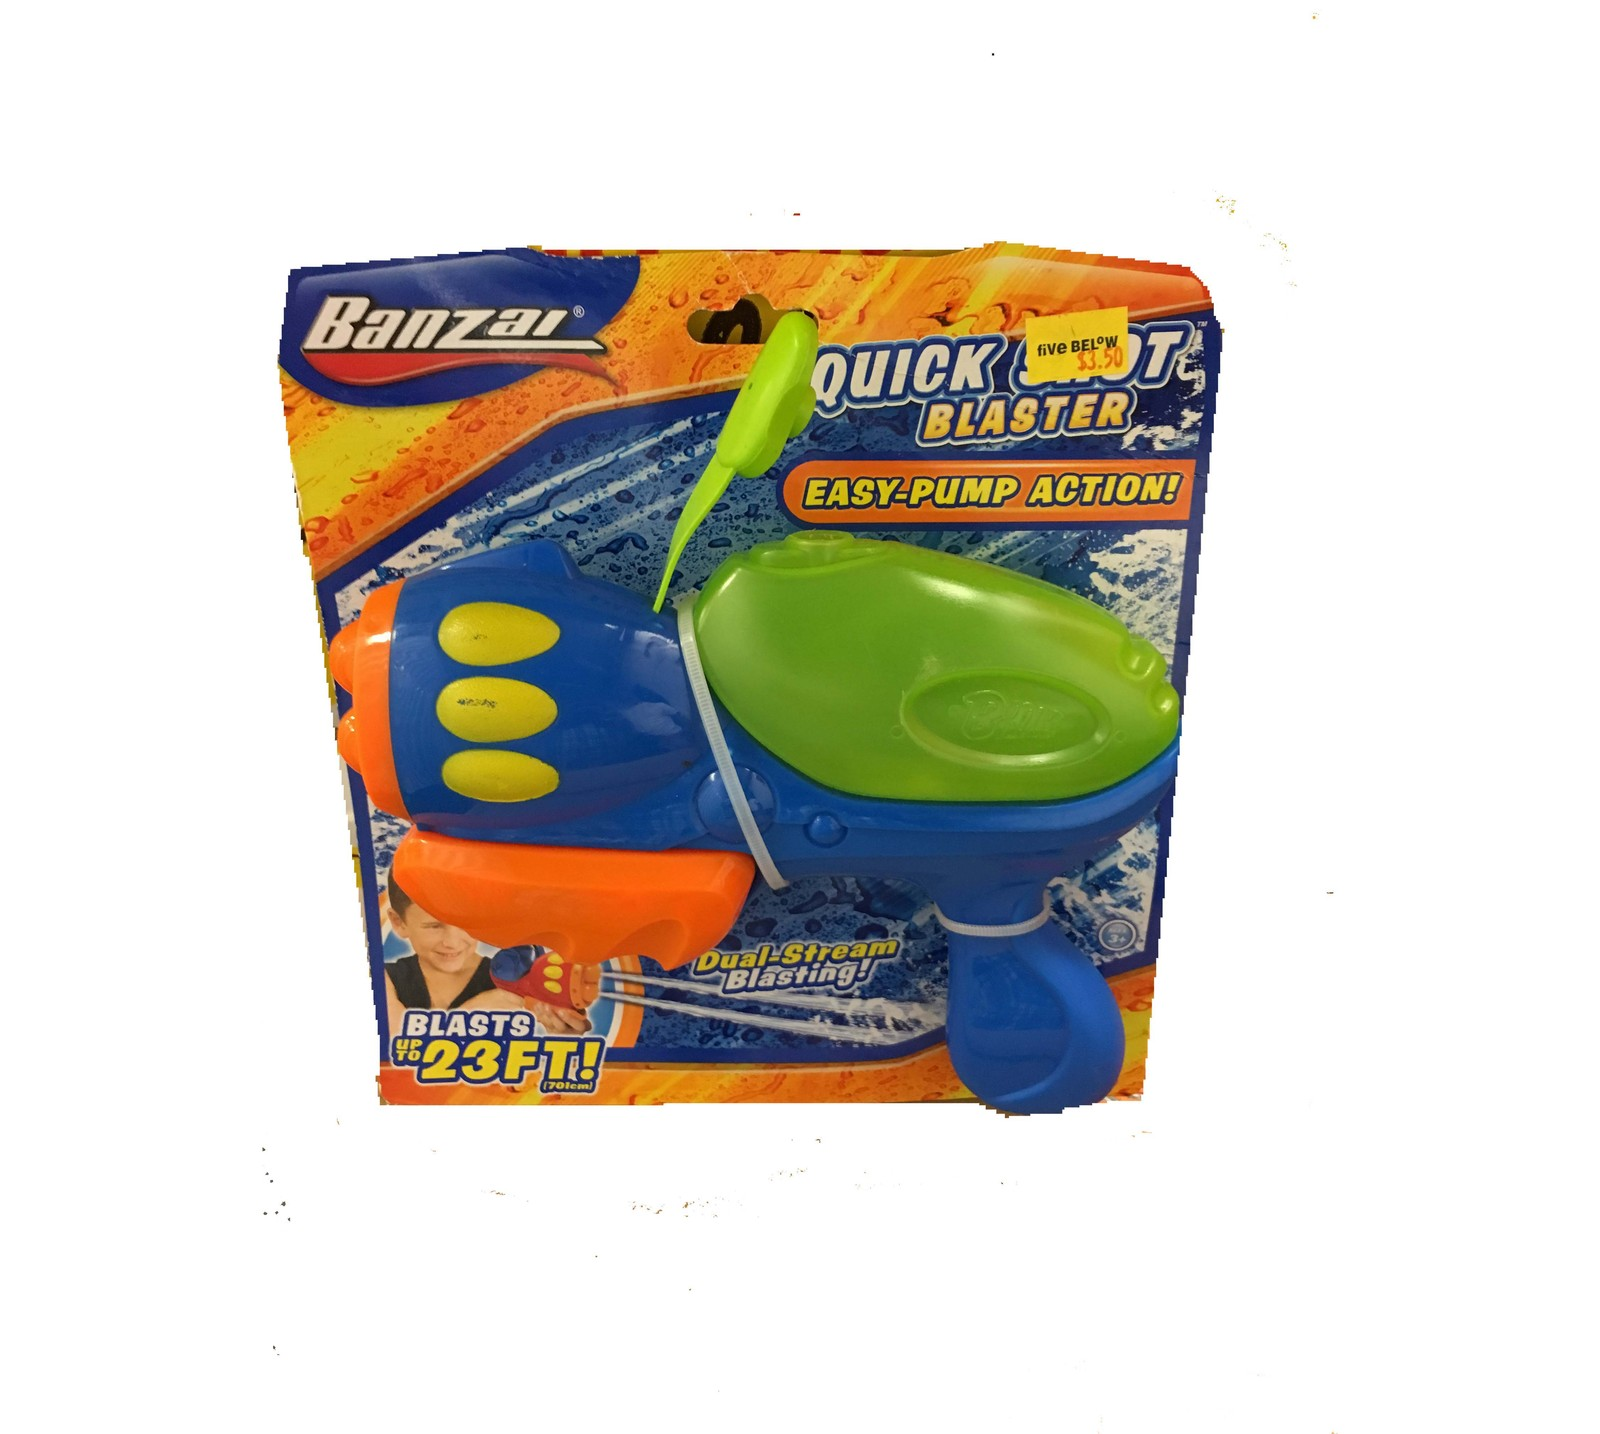 Primary image for BANZAI QUICK SHOT BLASTER EASY PUMP ACTION DUAL-STREAM BLASTING UP TO 23 FT